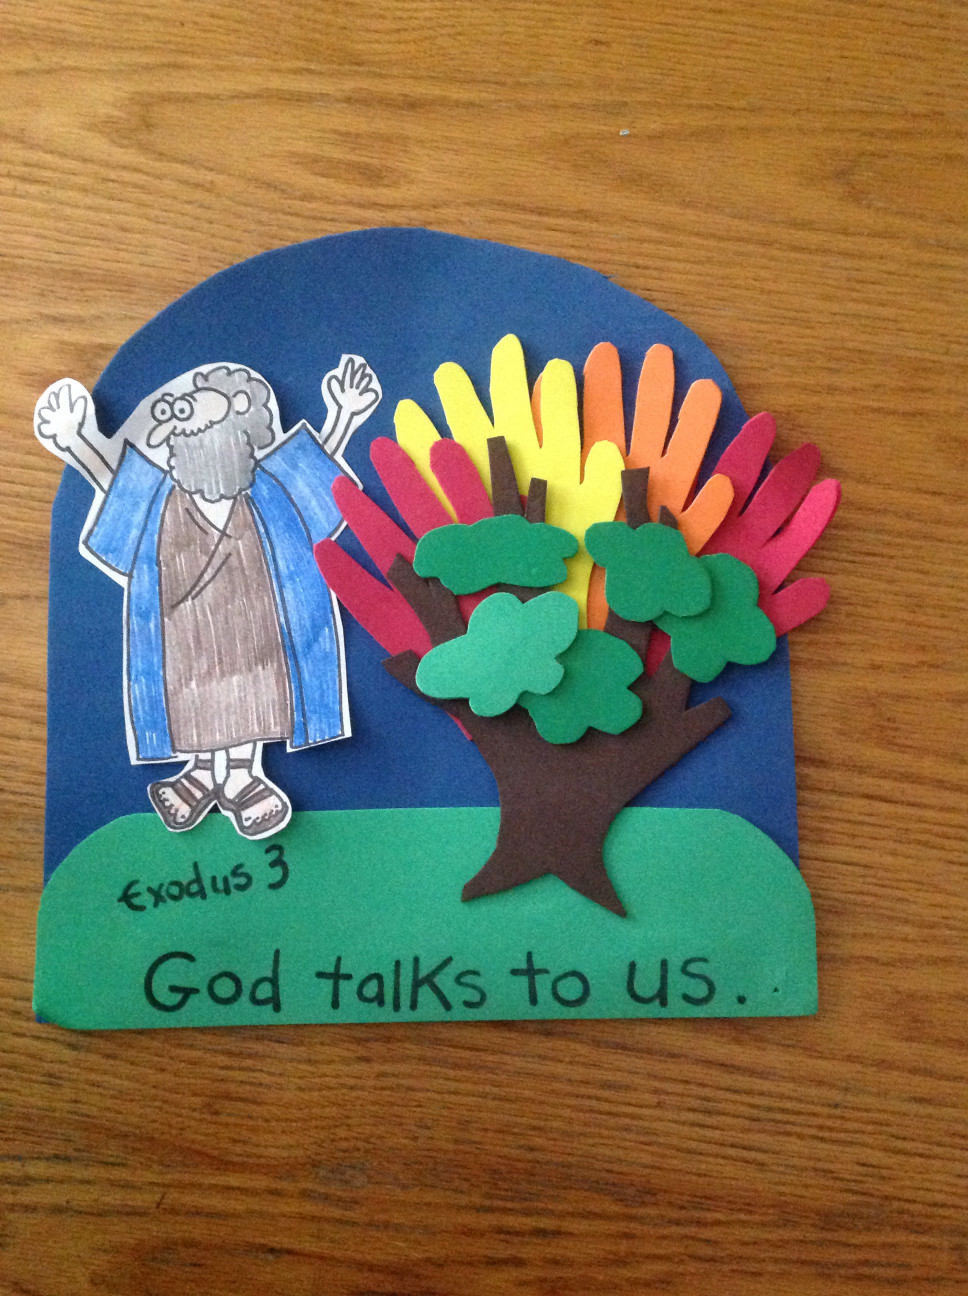 20 Of the Best Ideas for Bible Crafts for Kids - Home